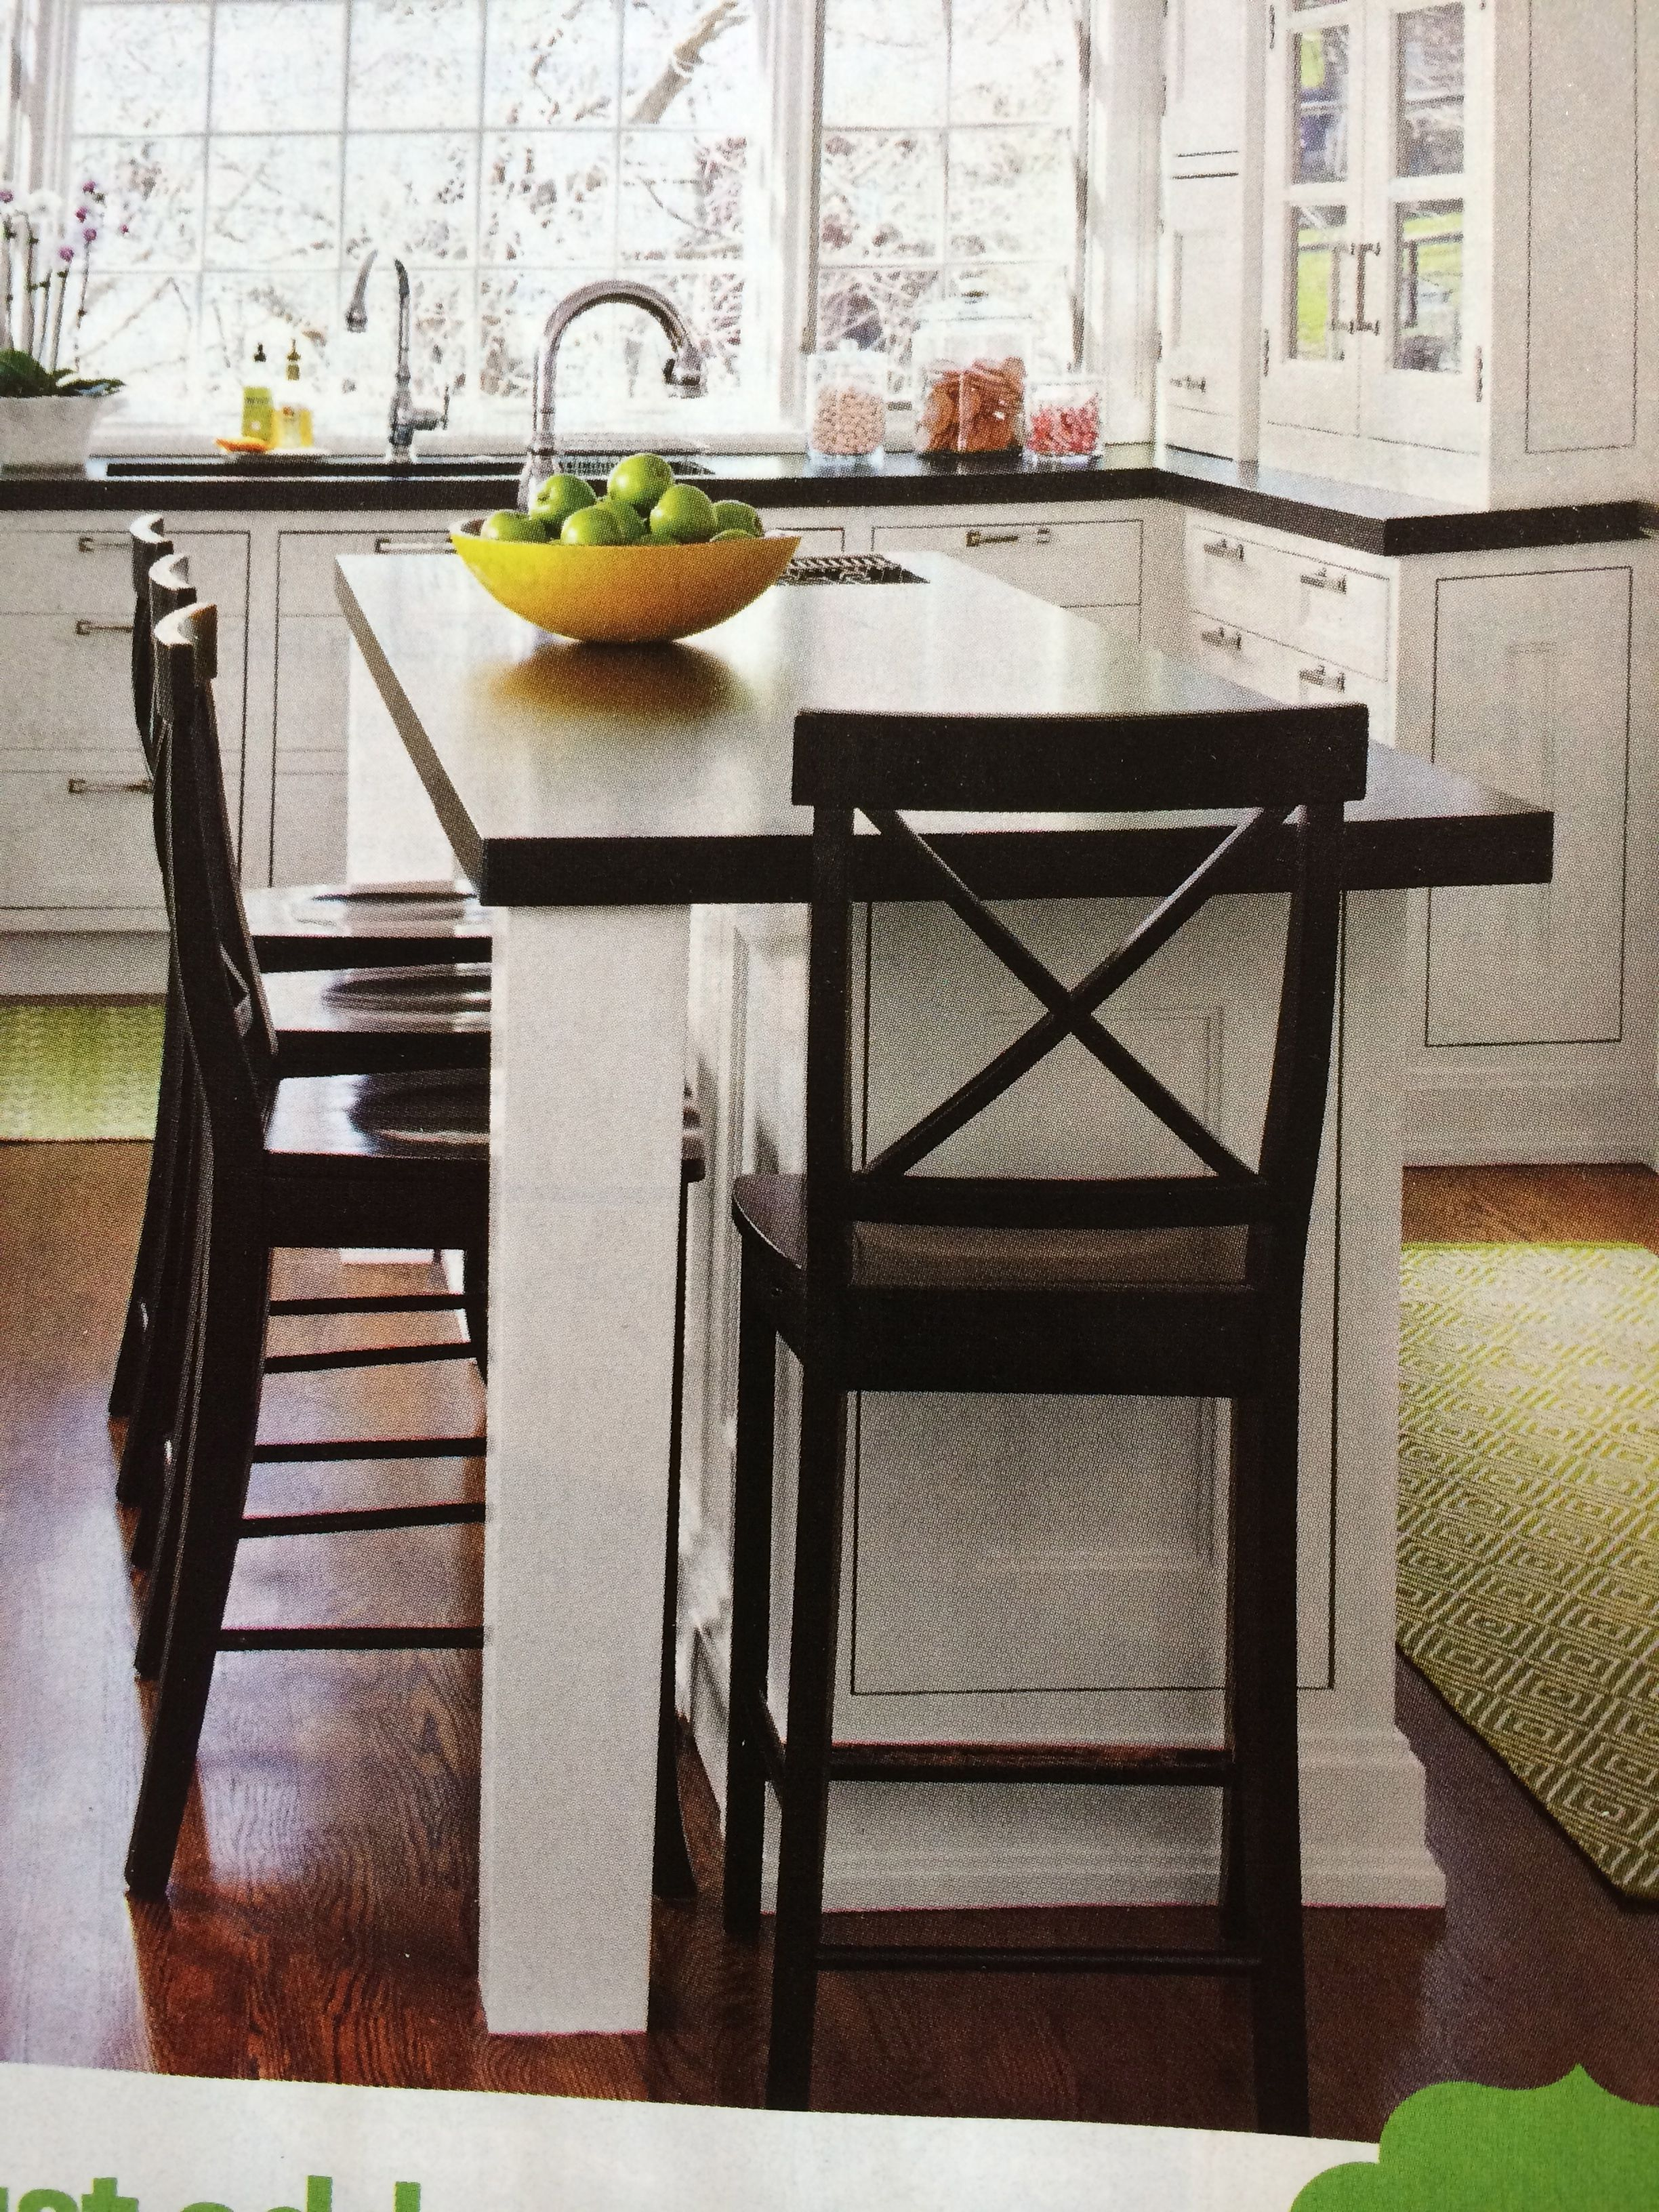 Create Meal Prep Faster And More Working In A Little Kitchen As Soon As An Futuristic Kitchen Kitchen Design Small Kitchen Remodel Small Small Kitchen Layouts